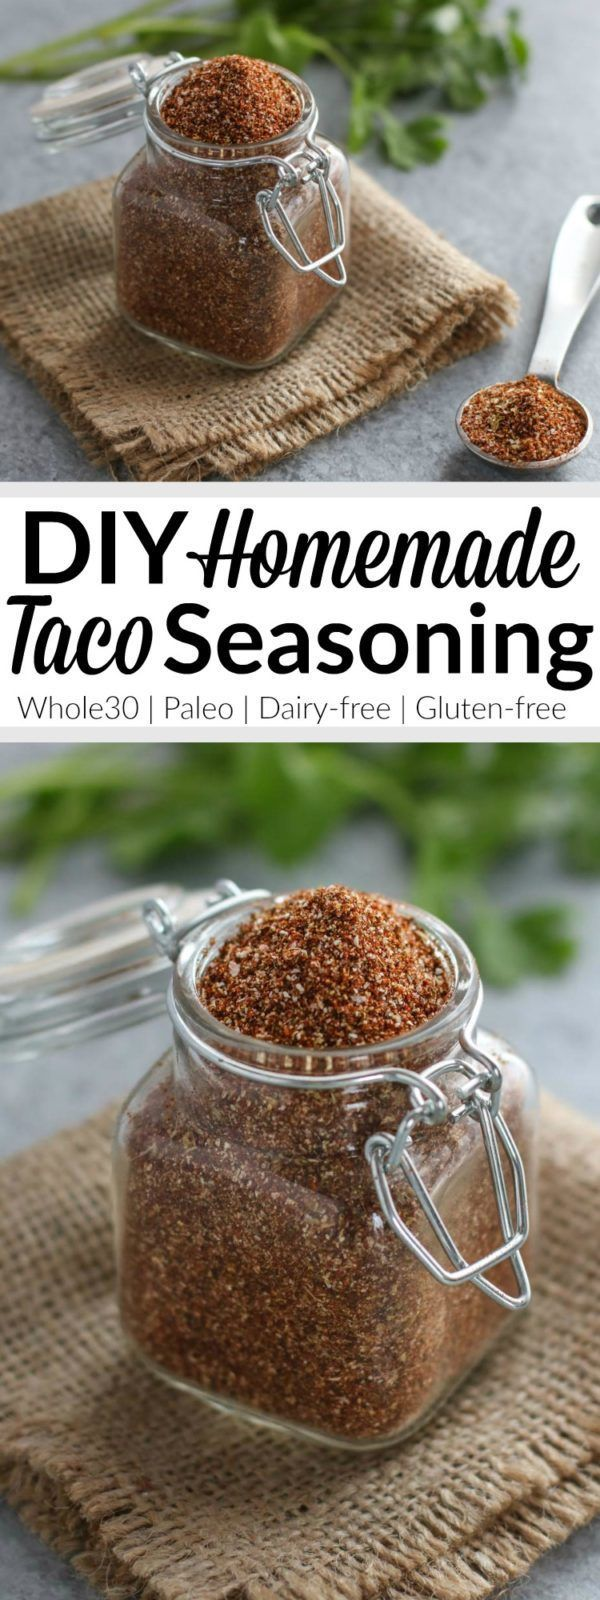 A DIY taco seasoning that's no-fuss and free of fillers, preservatives and sugar. Makes enough to season 3 pounds of ground meat. Also great for seasoning fajitas and as a rub for grilled chicken, ste (Whole 30 Recipes Dressing)